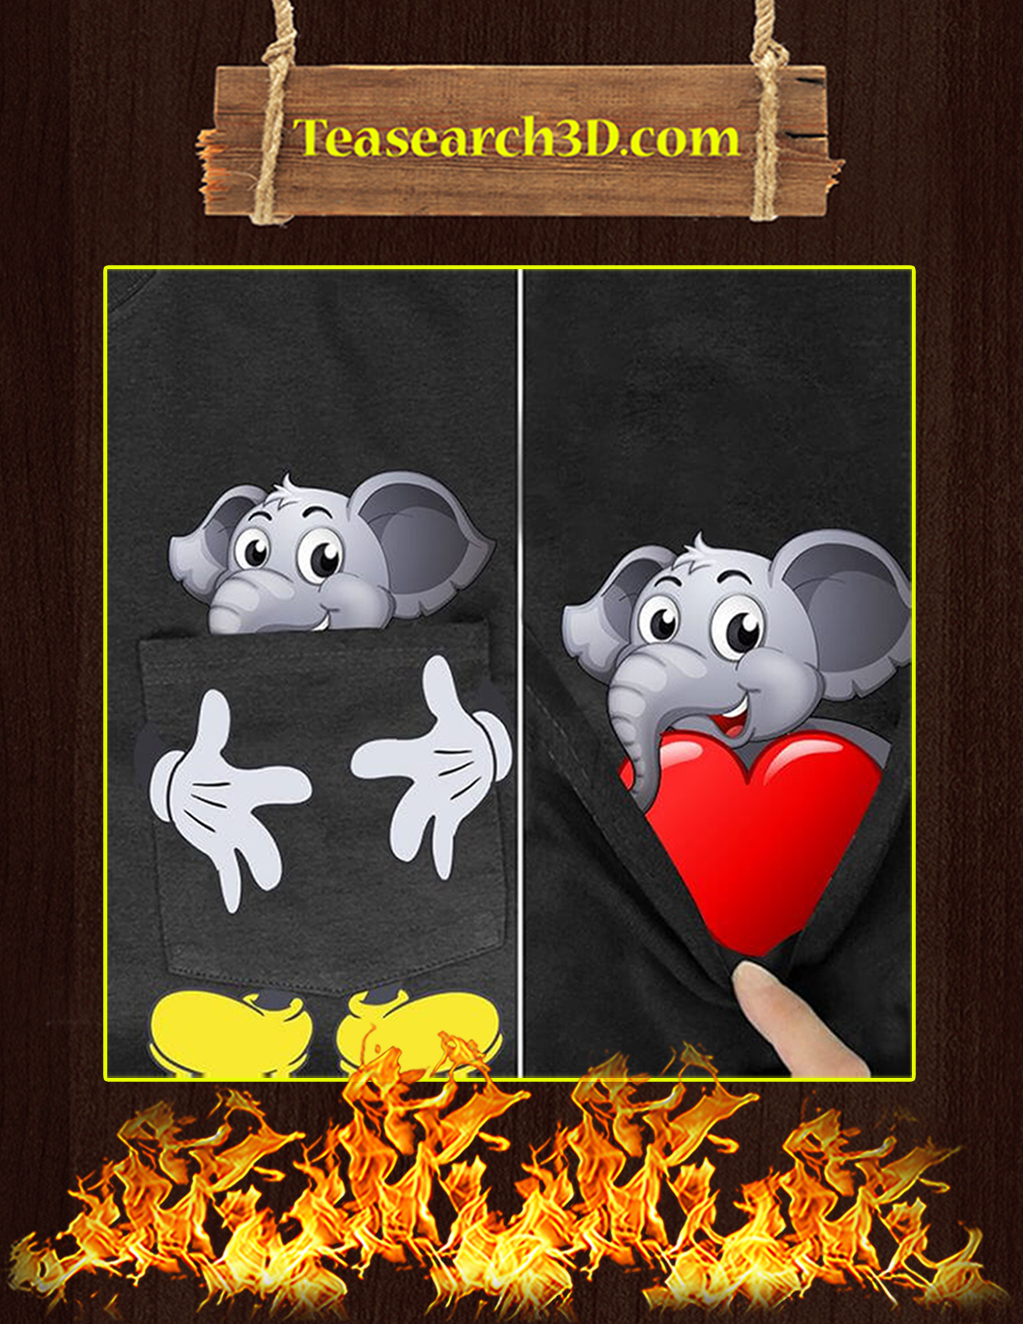 Funny Elephant With Heart Pocket T-shirt - In detail